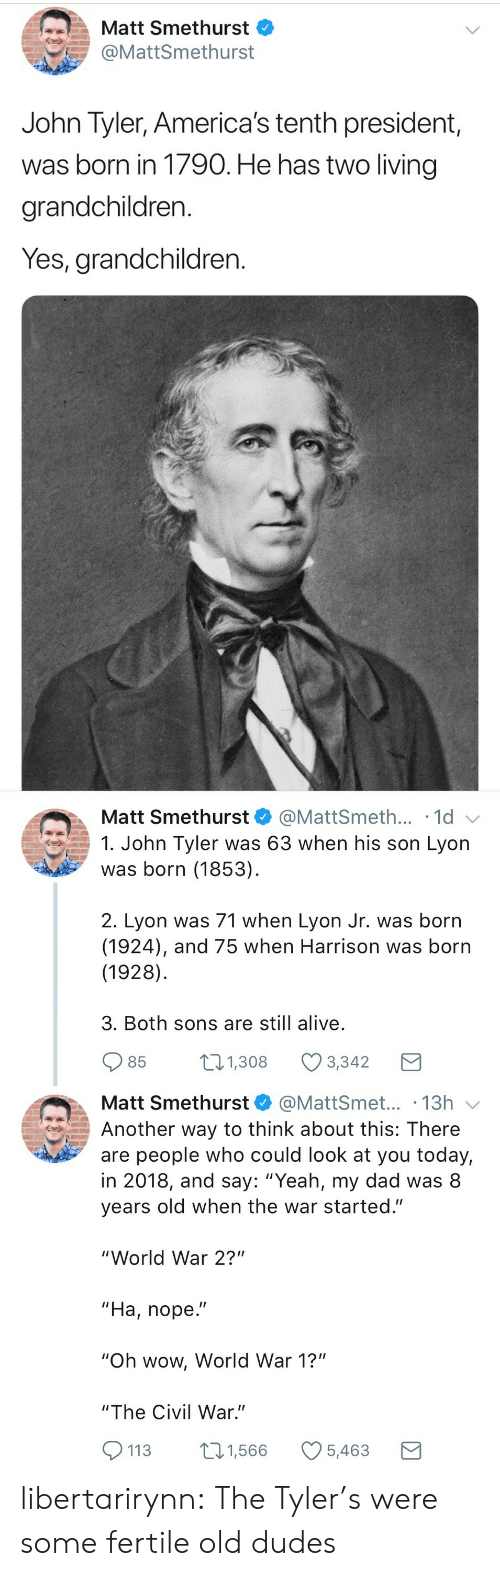 "the civil war: Matt Smethurst  @MattSmethurst  John Tyler, America's tenth president,  was born in 1790. He has two living  grandchildren.  Yes, grandchildren.   Matt Smethurst  @MattSmeth... 1d  1. John Tyler was 63 when his son Lyon  was born (1853)  2. Lyon was 71 when Lyon Jr. was born  (1924), and 75 when Harrison was born  (1928)  3. Both sons are still alive  85  1.308 Ø3342  Matt Smethurst@MattSmet... .13h  Another way to think about this: There  are people who could look at you today,  in 2018, and say: ""Yeah, my dad was 8  years old when the war started.""  ""World War 2?""  ""Ha, nope.""  ""Oh wow, World War 1?""  ""The Civil War.""  113 1,566 5,463 libertarirynn: The Tyler's were some fertile old dudes"